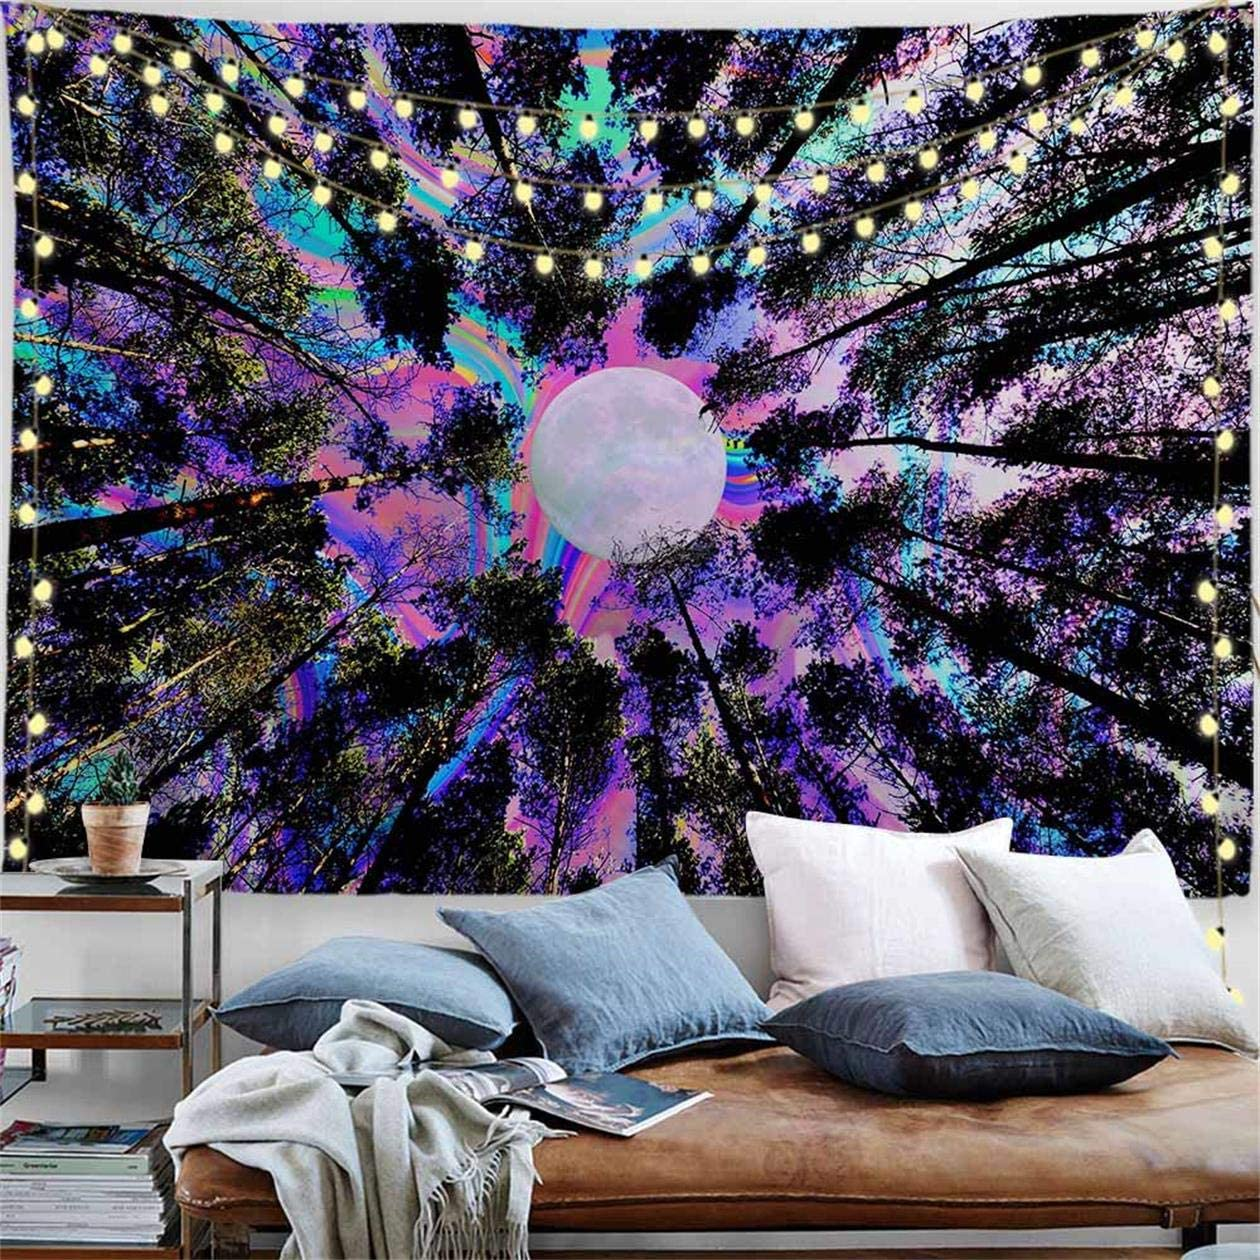 PROCIDA Trippy Tapestry Psychedelic Moon Tapestry Forest Colorful Wall Tapestry for Dorm Bedroom Living Room College Nails Included 90 W x 71 H, Trippy Tree